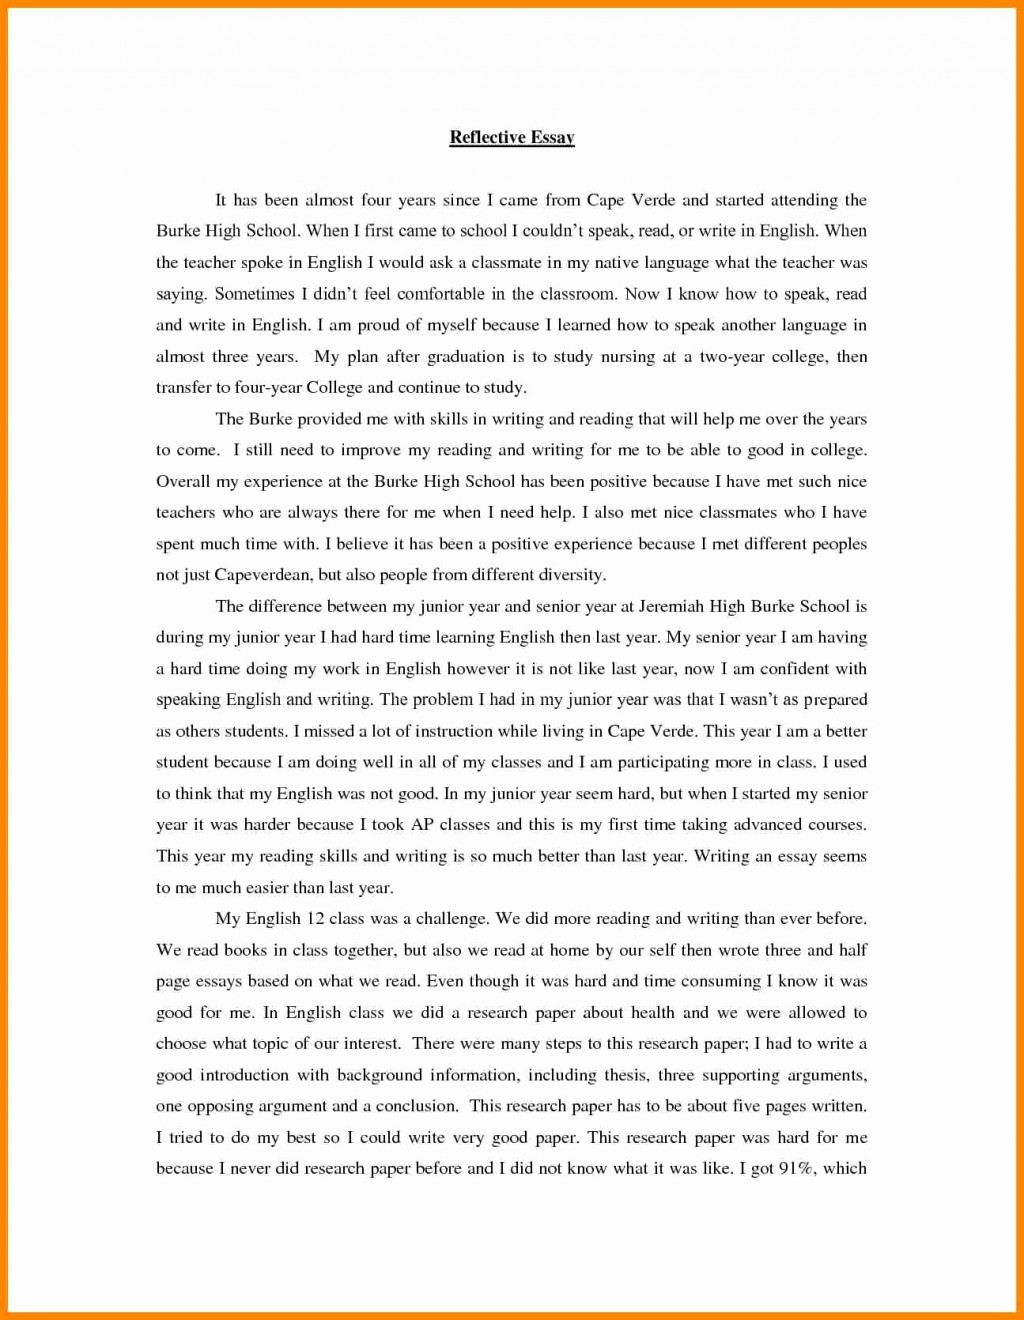 004 Sampleosal Argument Essay Term Paper Academic Service Argumentative Examples For High School Luxury Fresh Catcher In The Free Pdf Example On Abortion College About Love Debate Unique Proposal Large